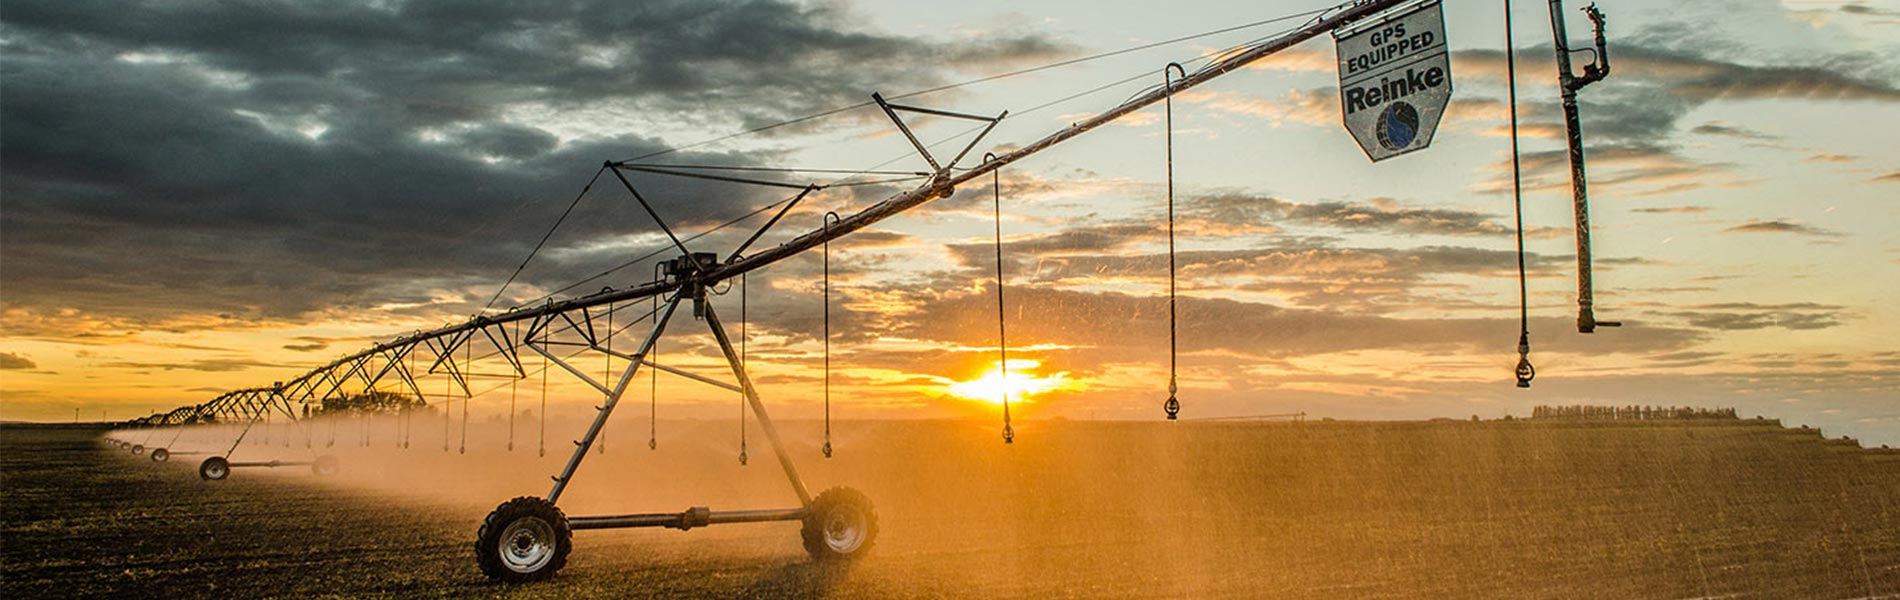 REINKE-IRRIGATION-SYSTEMS